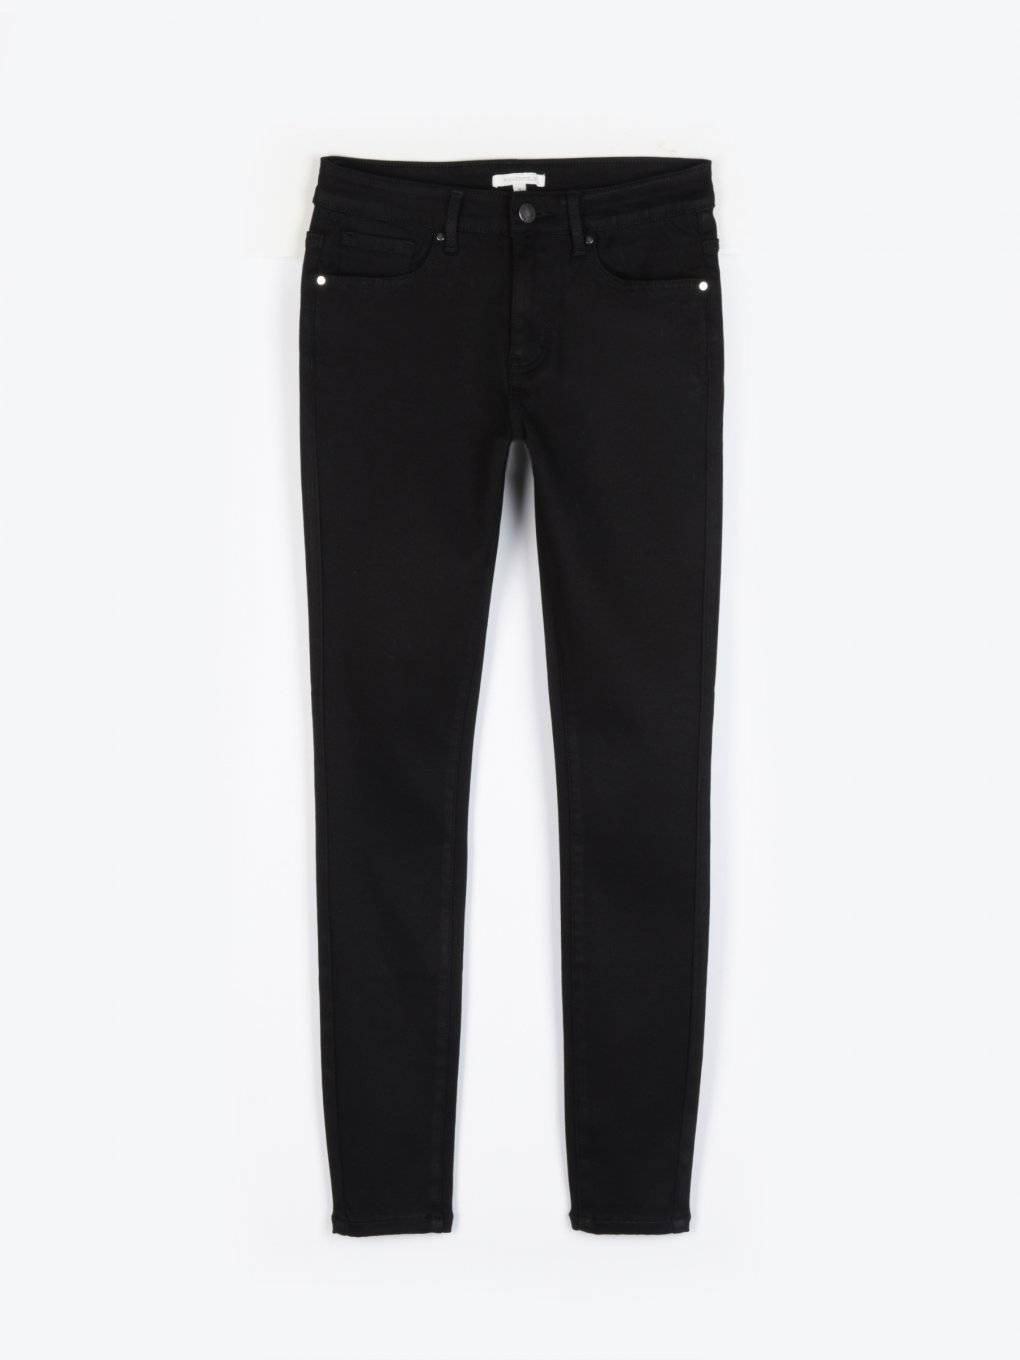 Stretchy skinny fit trousers